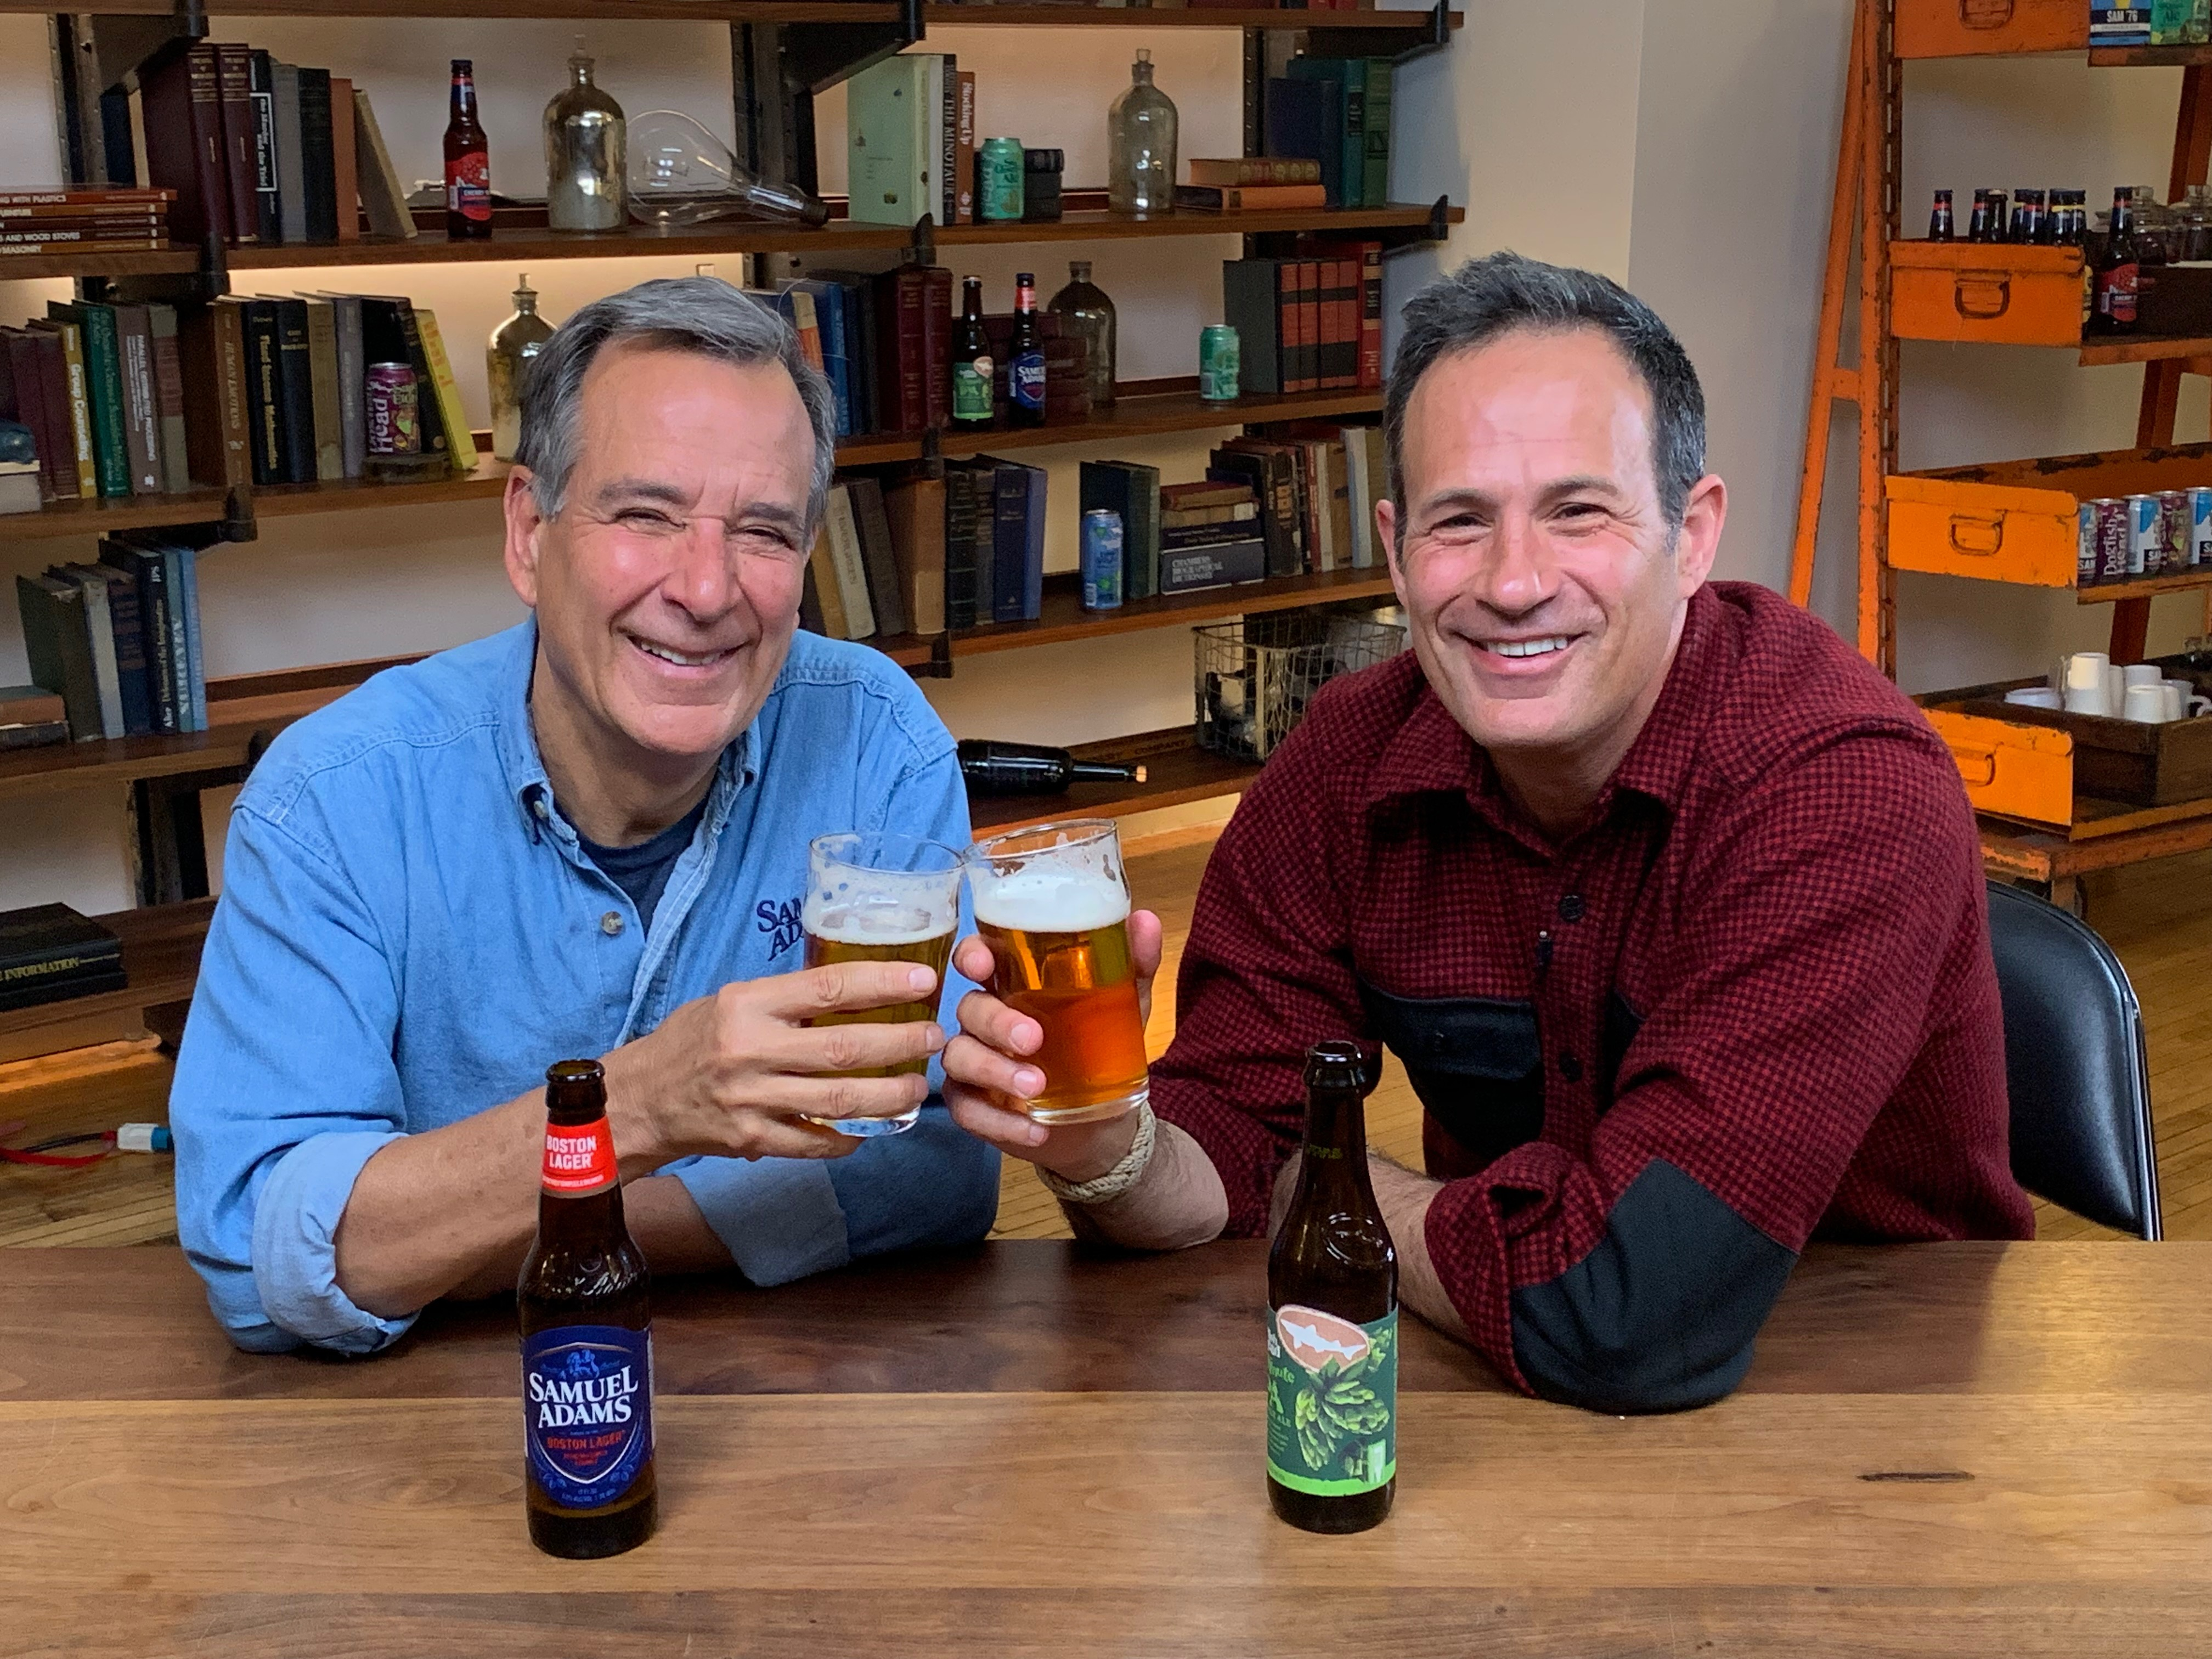 The Boston Beer Company acquires Dogfish Head Brewery. Pictured is Jim Koch and Sam Calagione. (image courtesy of The Boston Beer Co.)